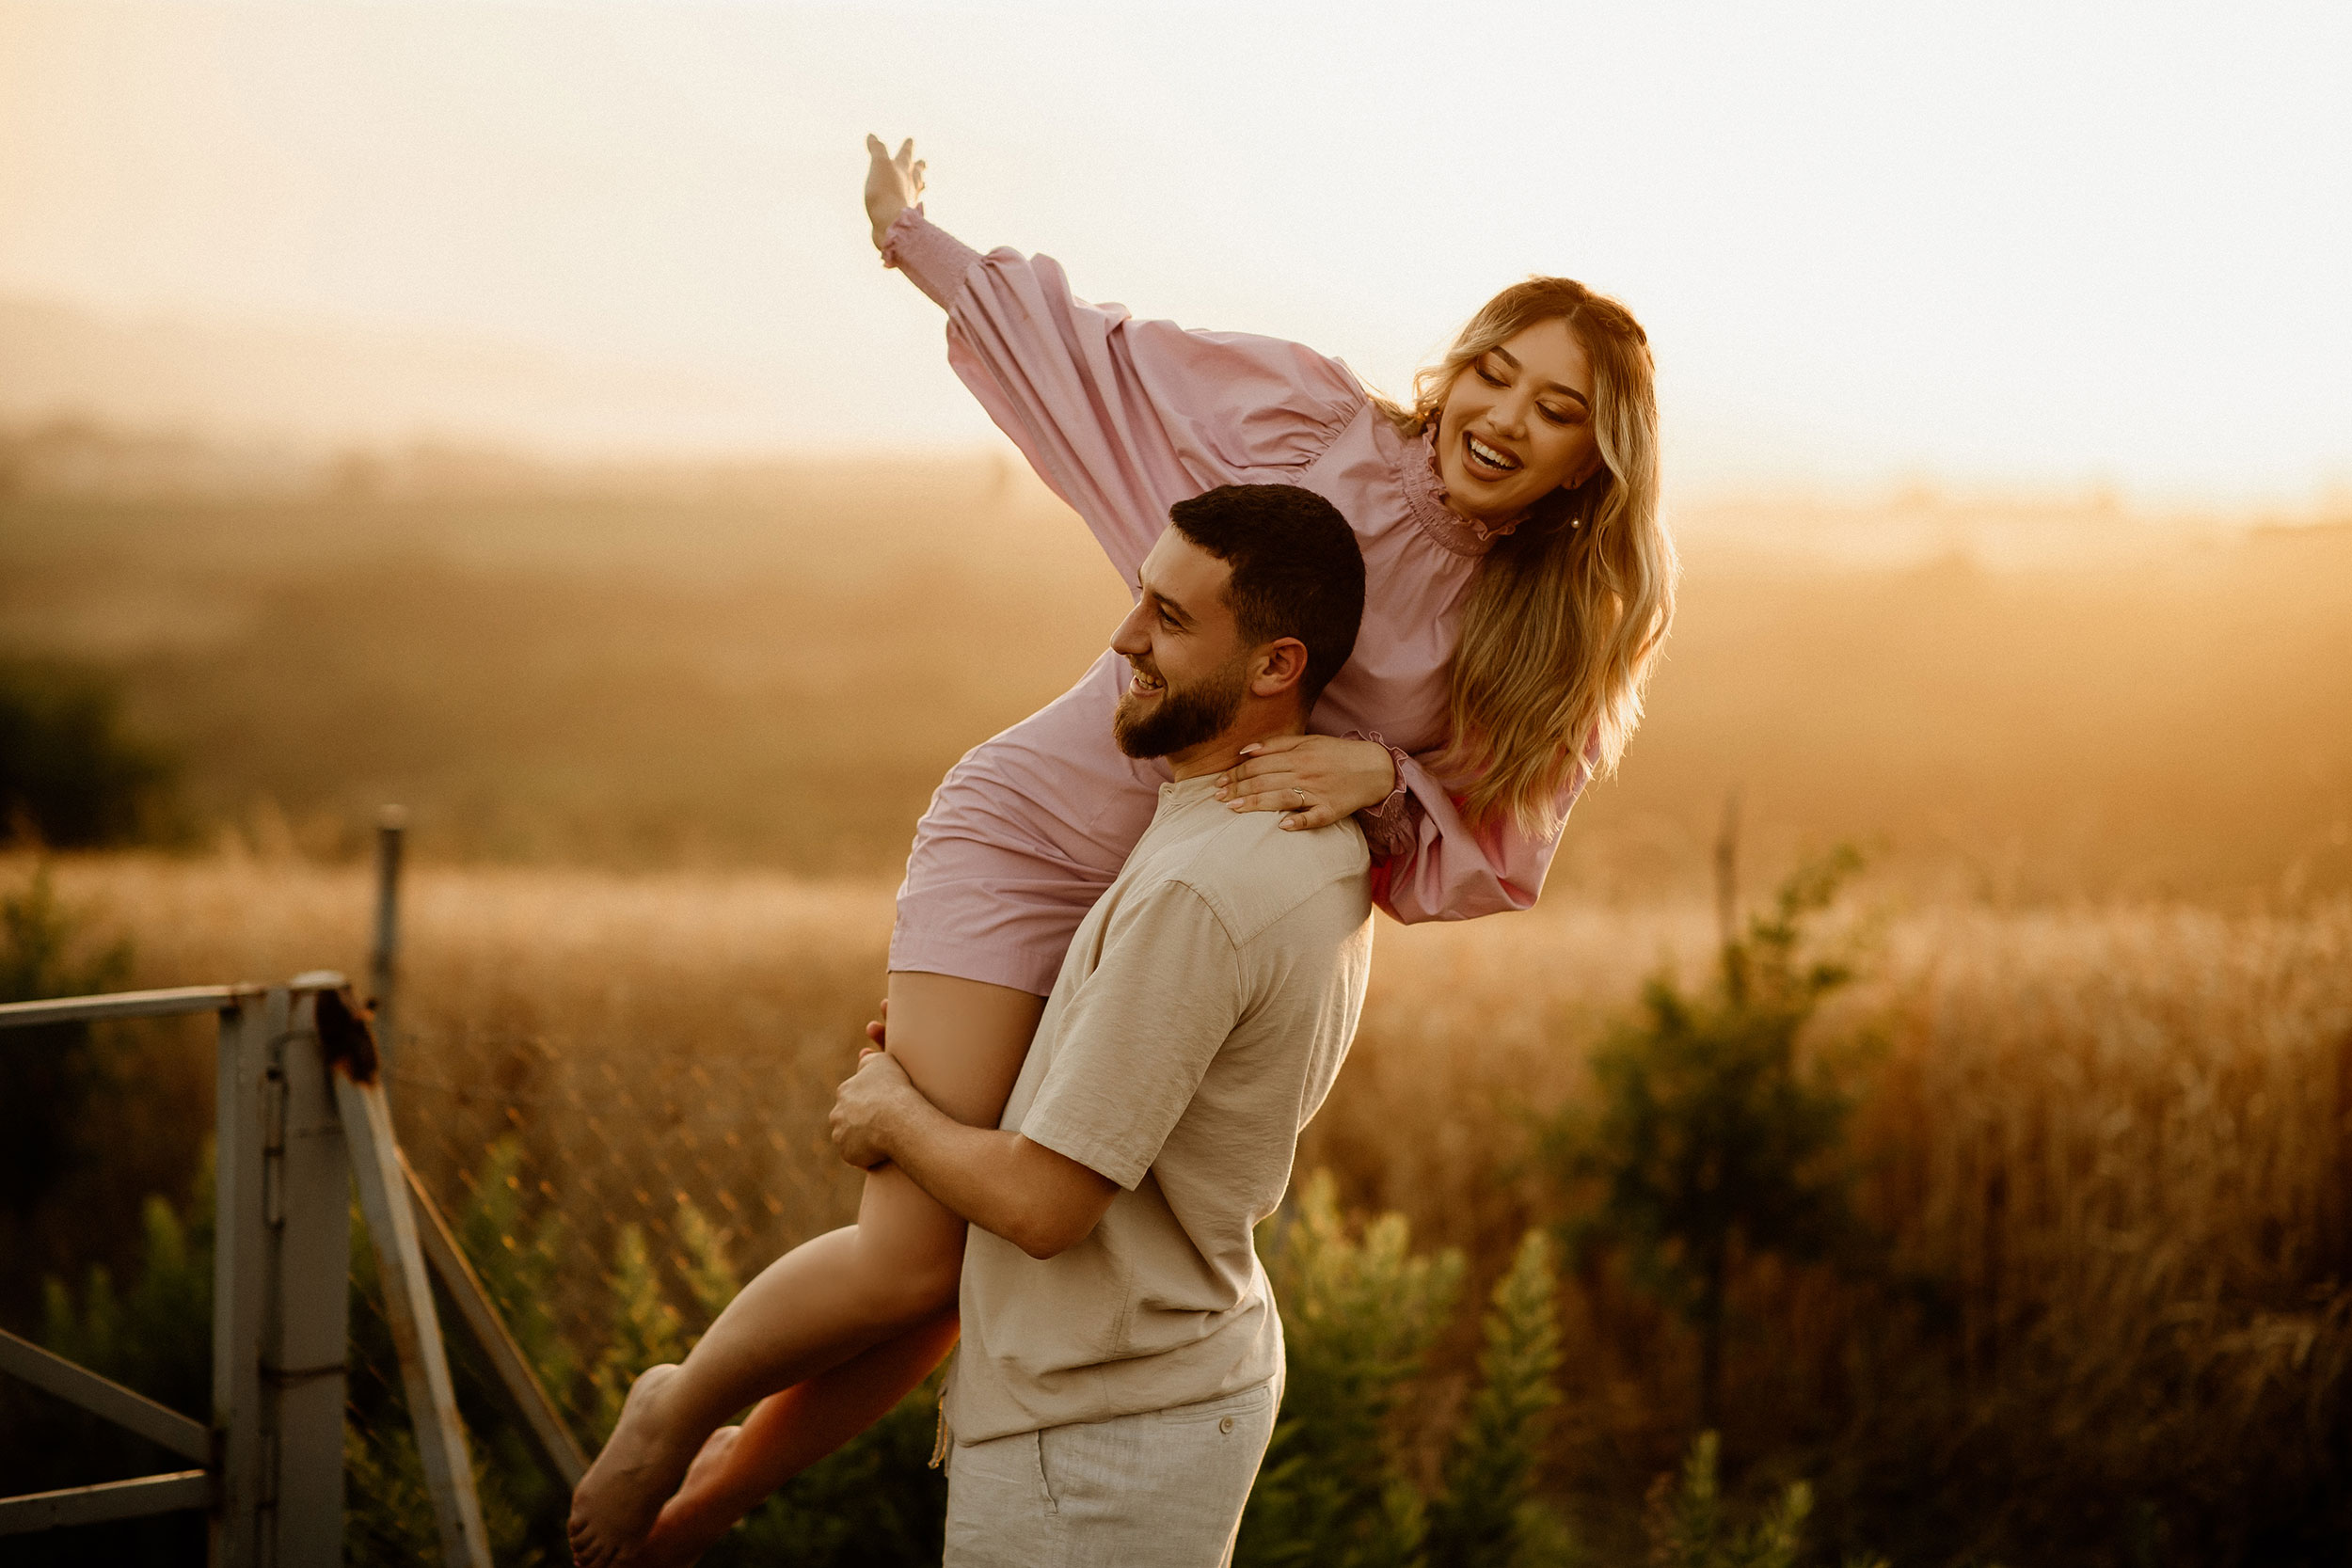 Boyfriend is lifting girlfriend in the air and holding her close